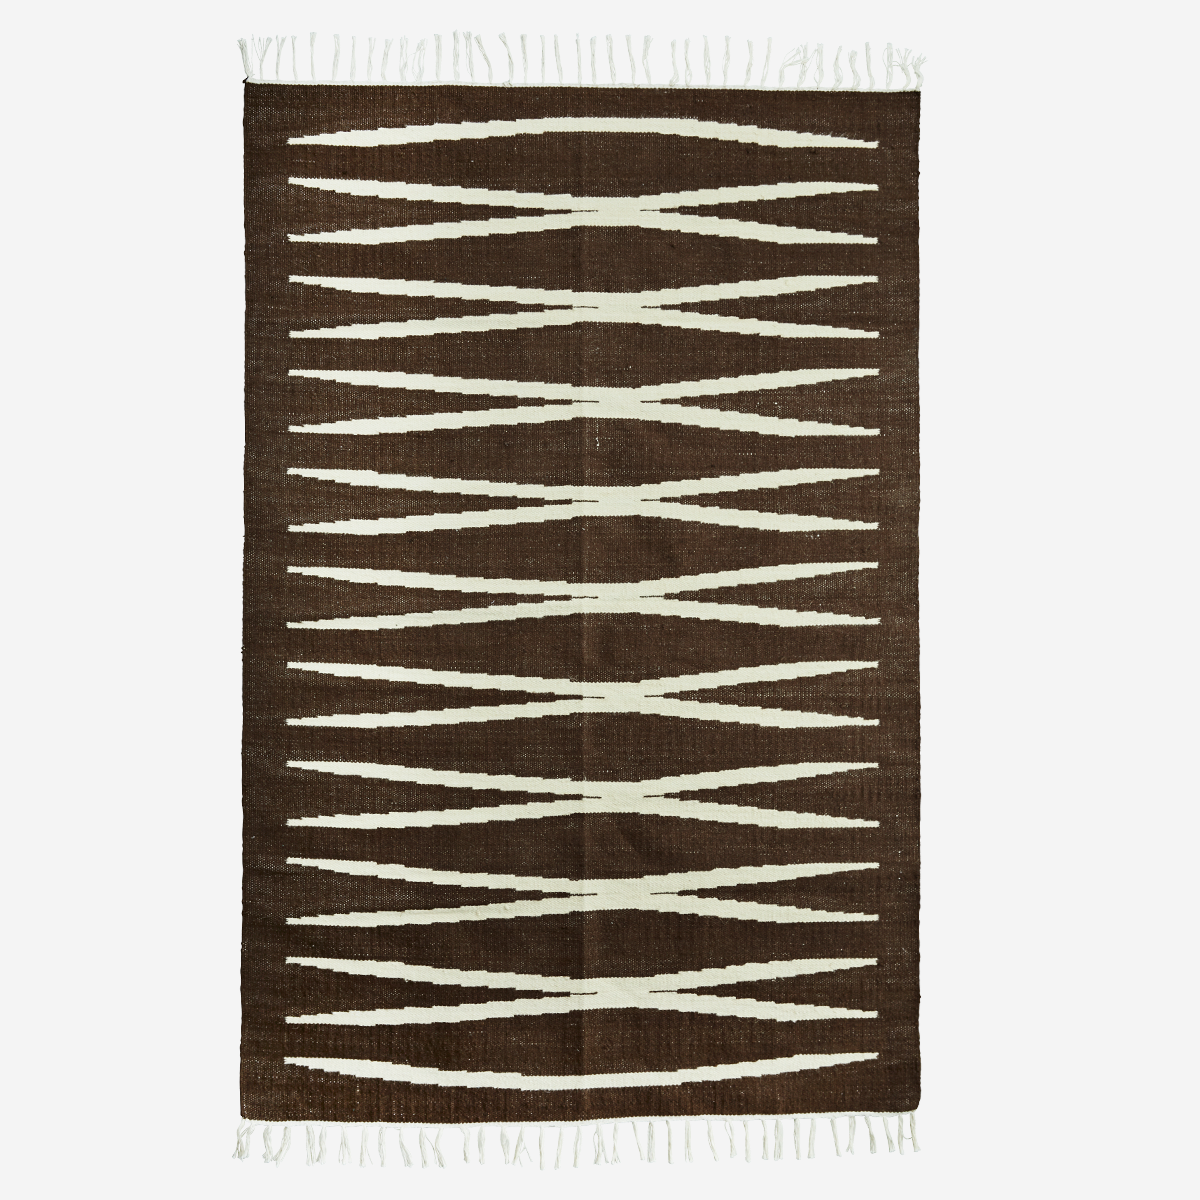 hk living brown cream jute cotton tassels zig zag lines monochrome rug